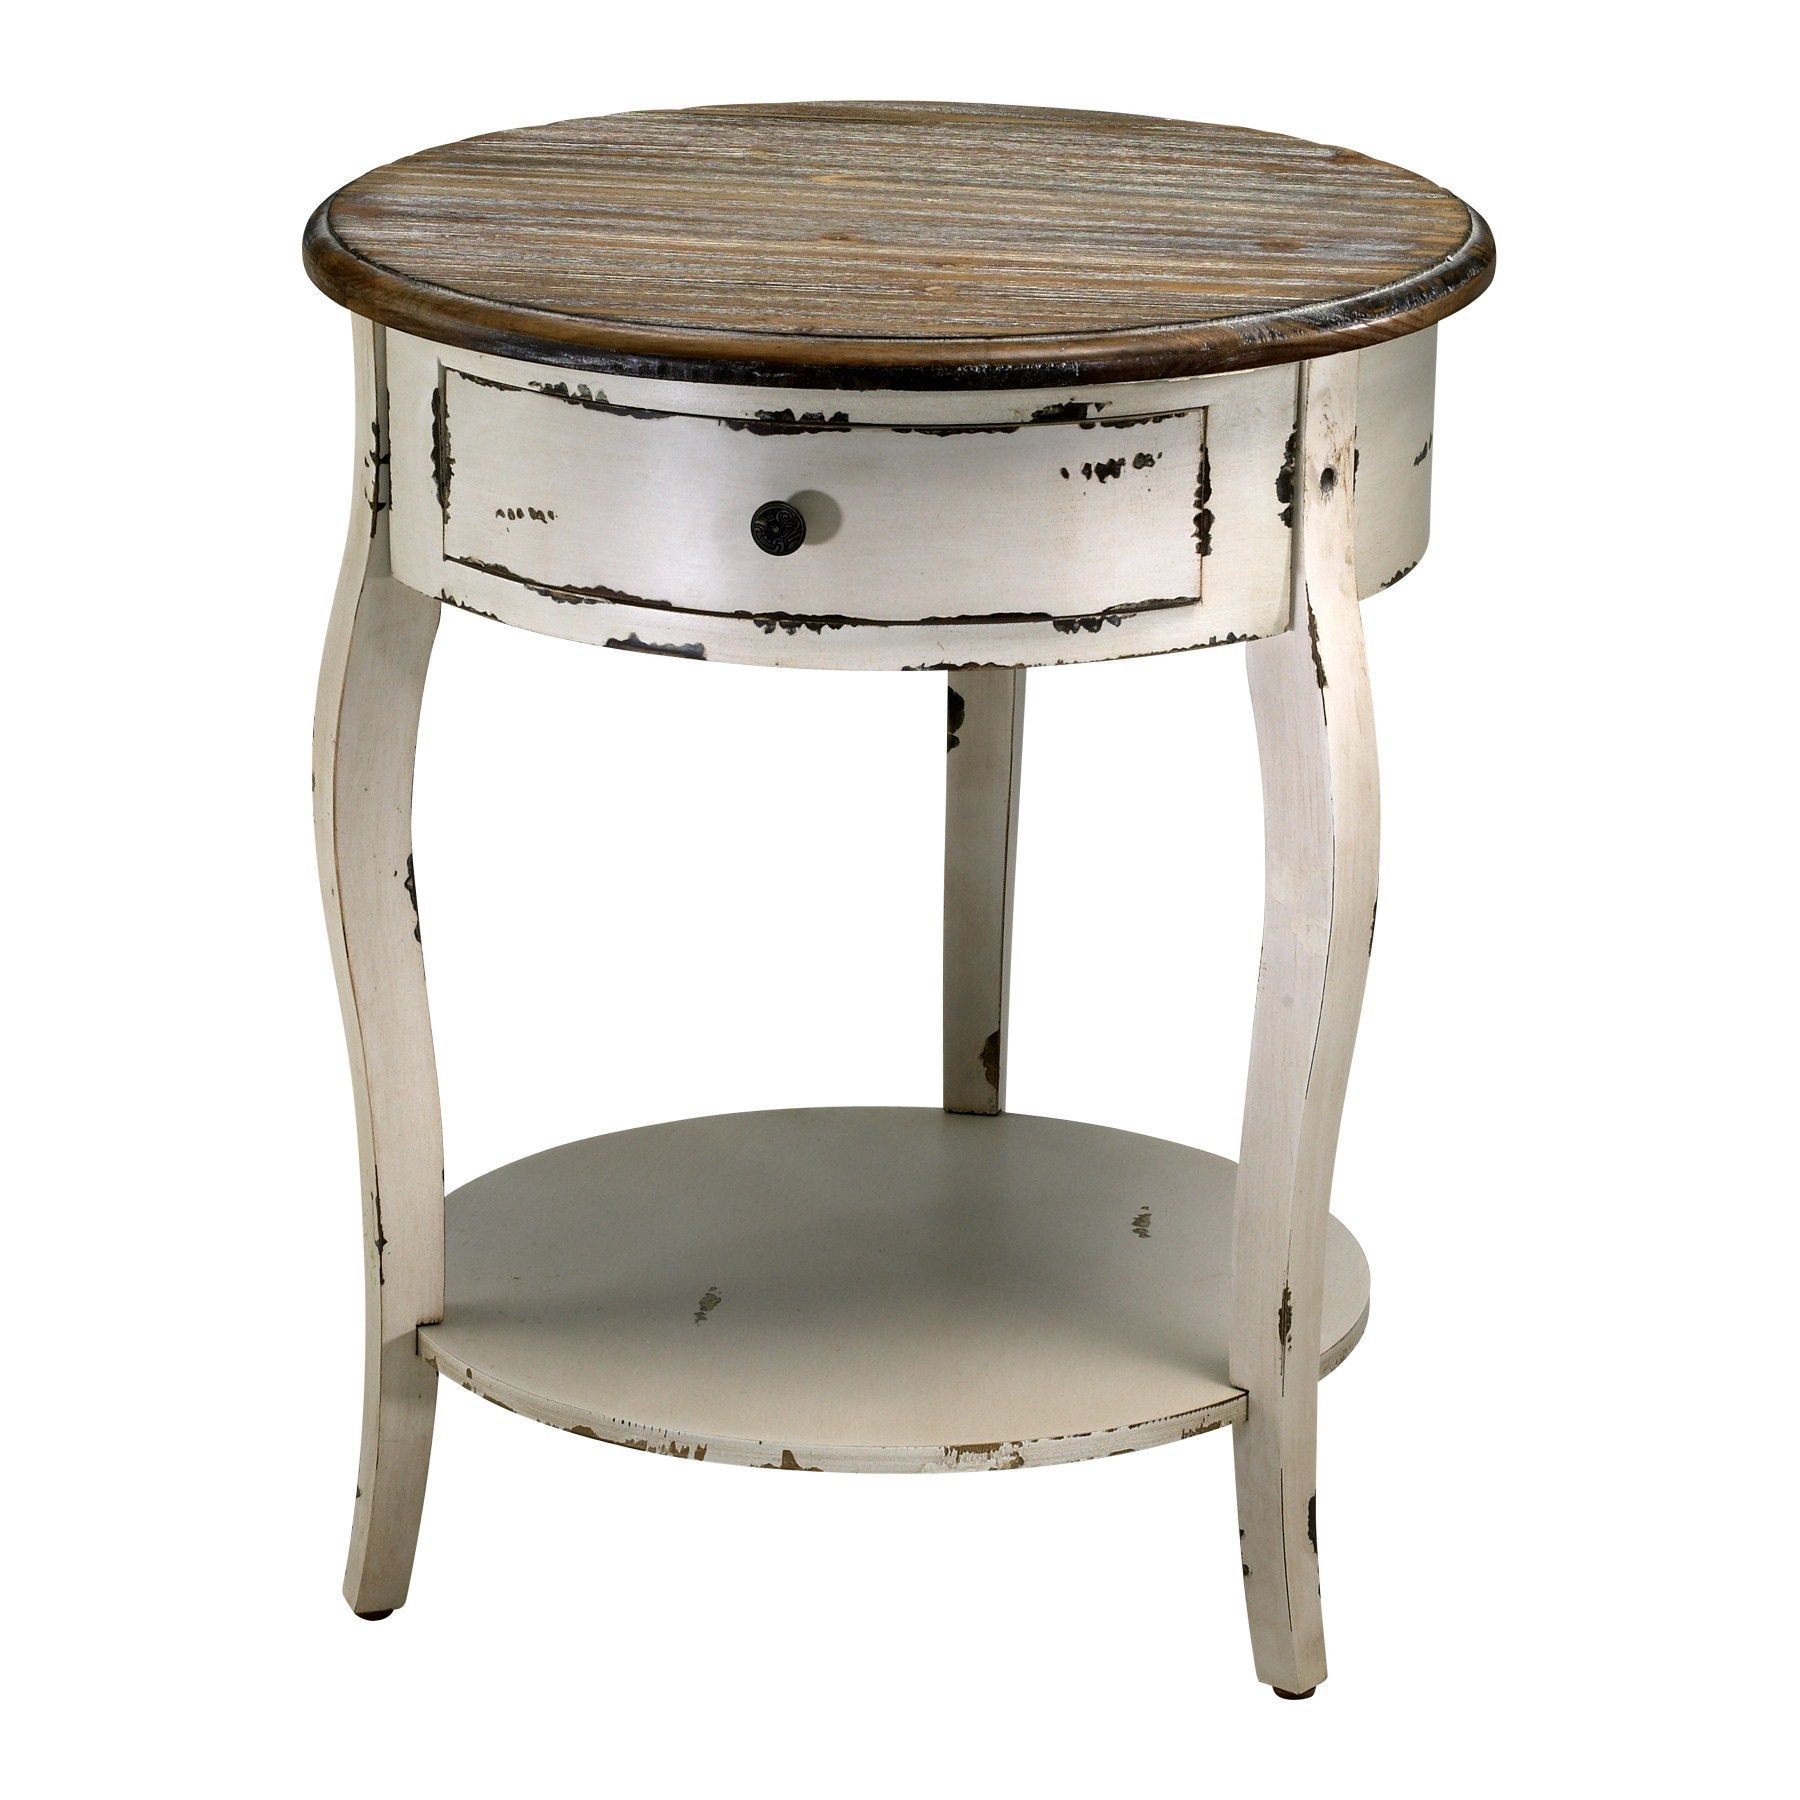 abelard side table cyan design paint rustic round accent this beautiful features off white distressed painted finish and natural wood top center drawer open shelf make leg kit